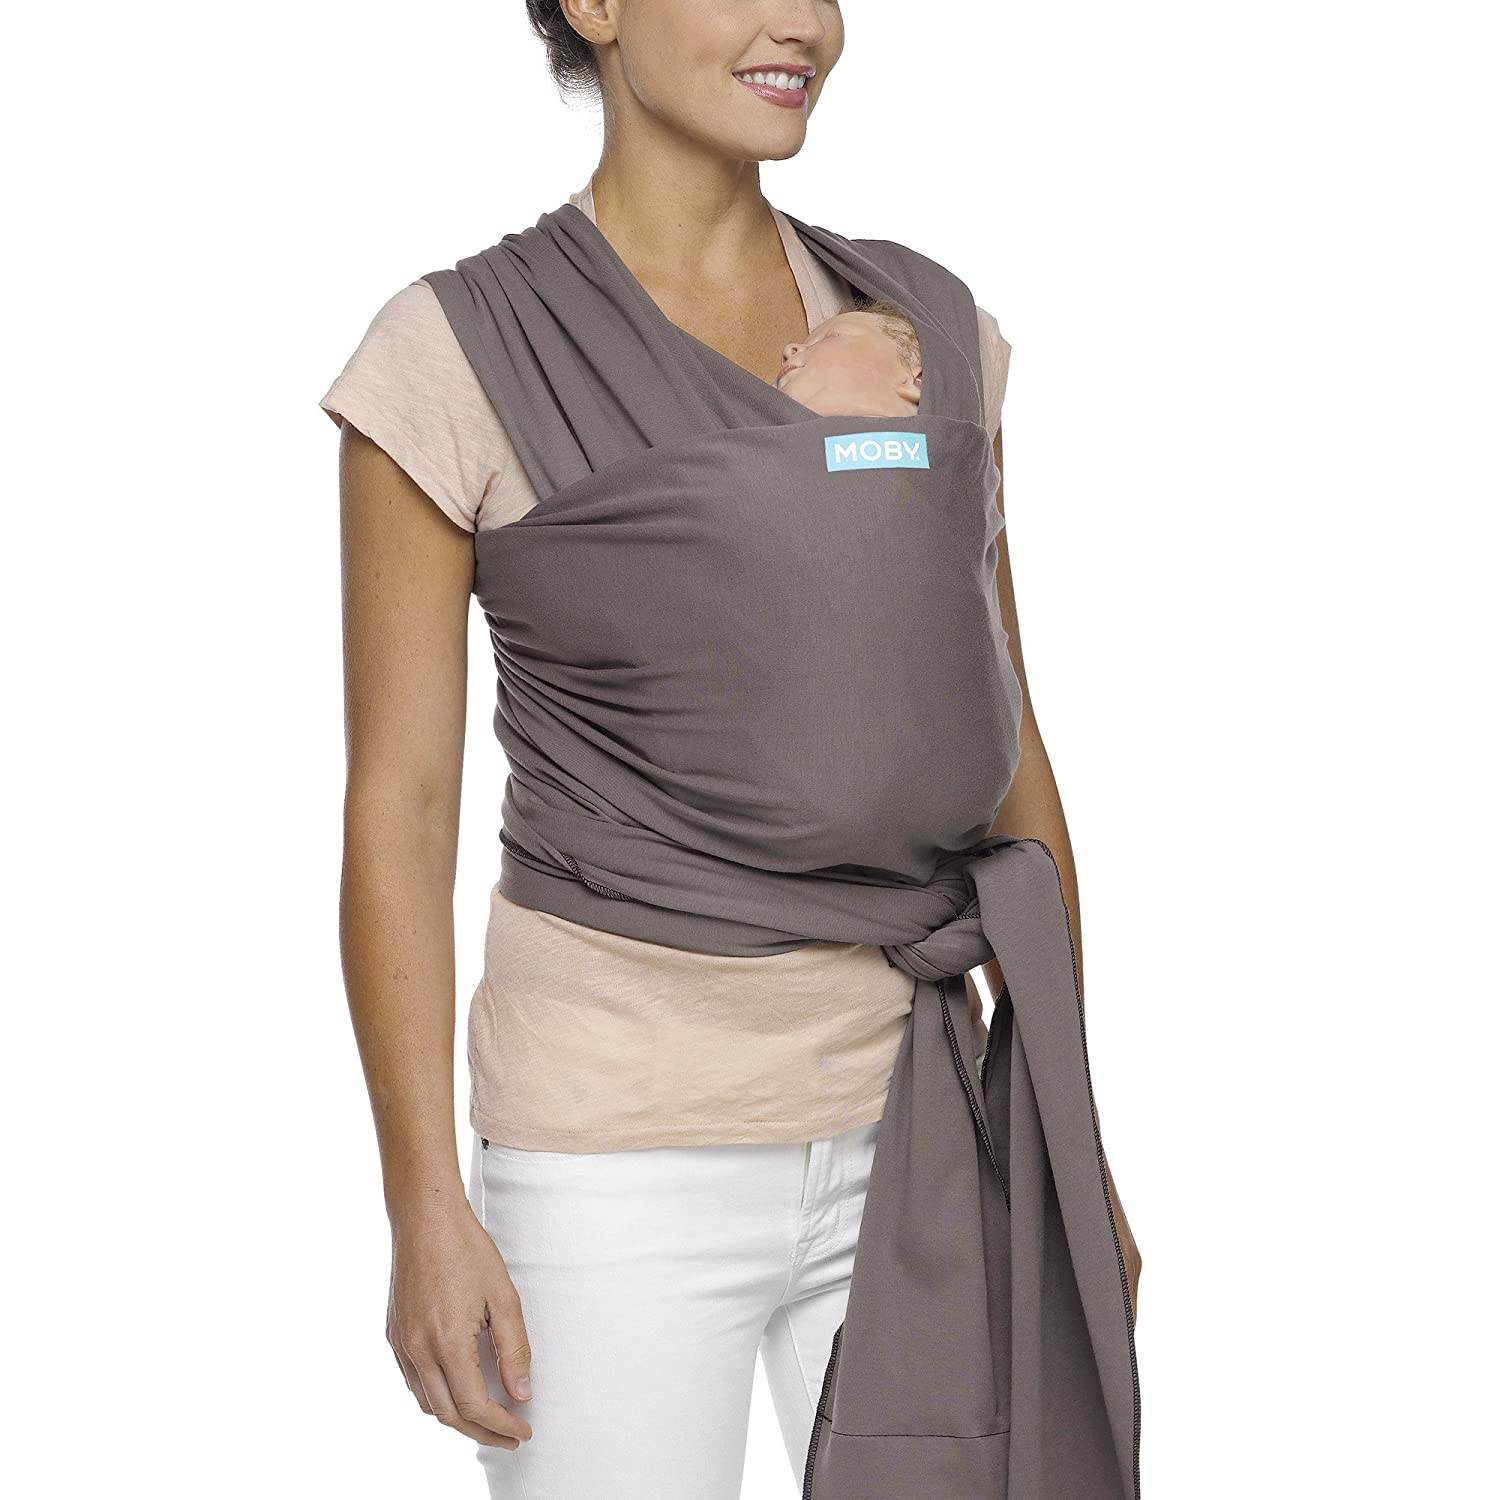 2a67b421396 Amazon.com   Moby Classic Baby Wrap (Slate) - Baby Wearing Wrap for Parents  On The Go - Baby Wrap Carrier for Newborns